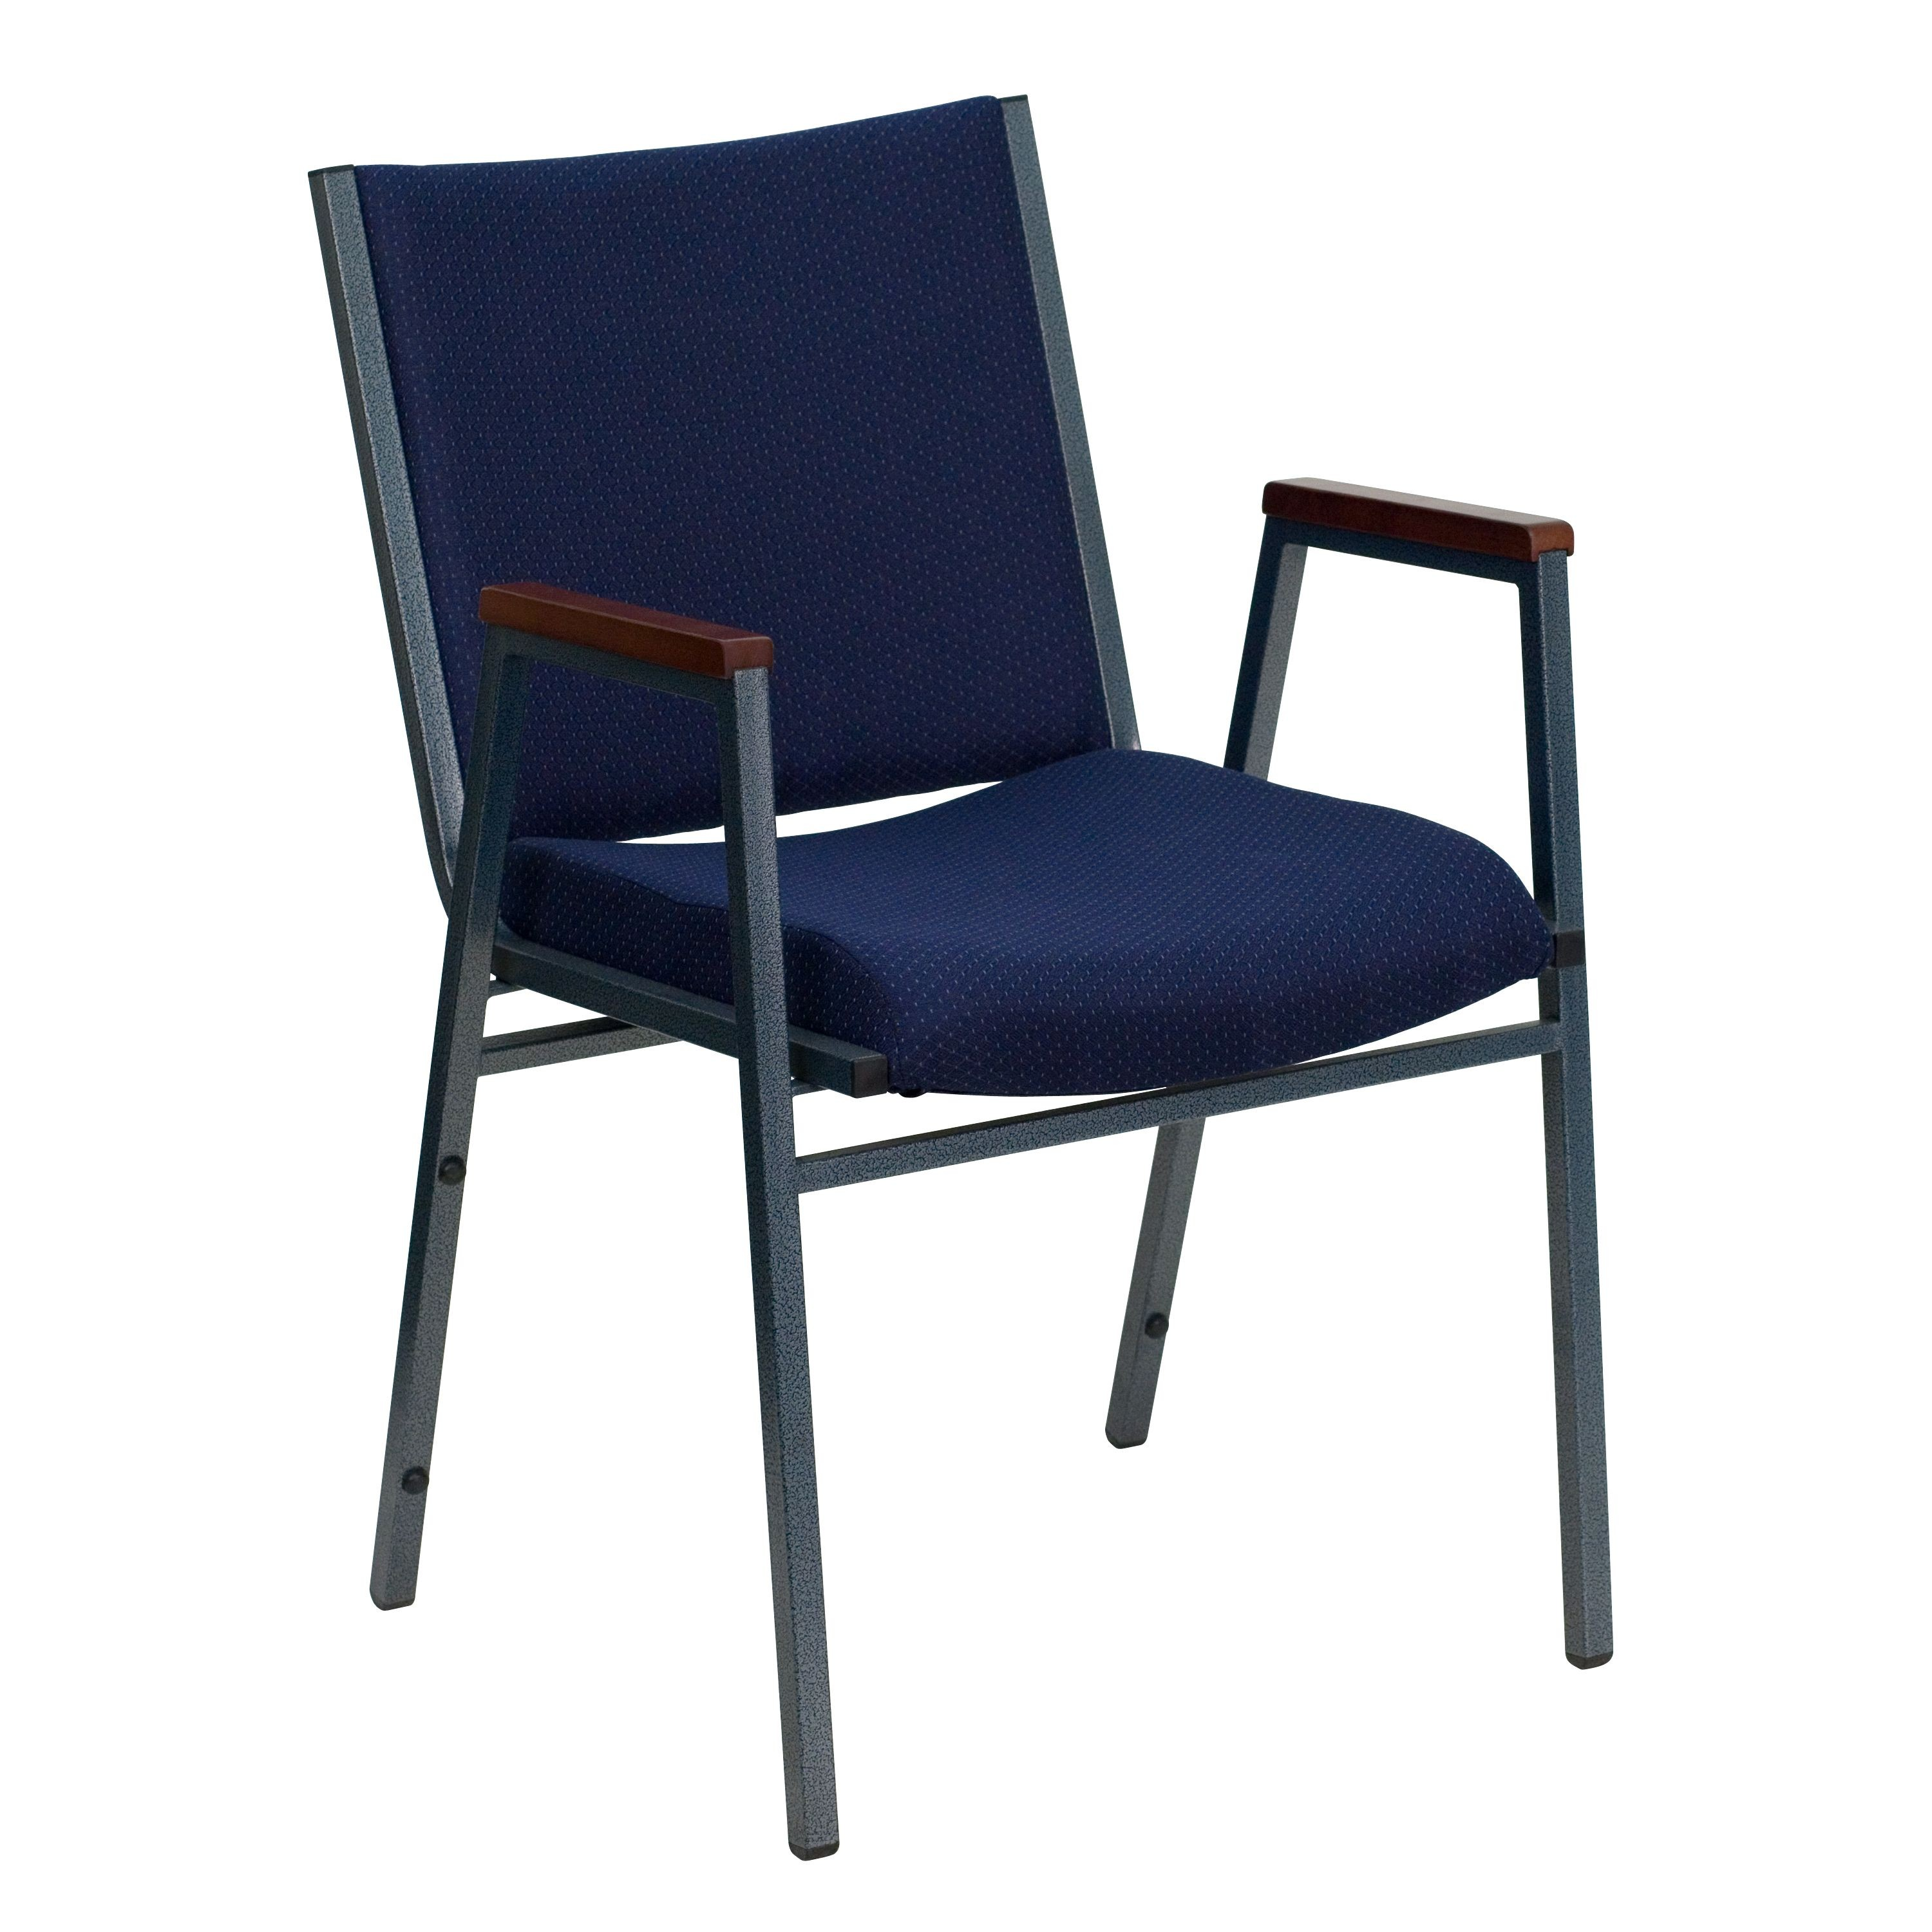 Flash Furniture XU-60154-NVY-GG Heavy Duty, 3'' Thickly Padded, Navy Patterned Upholstered Stack Chair with Arms